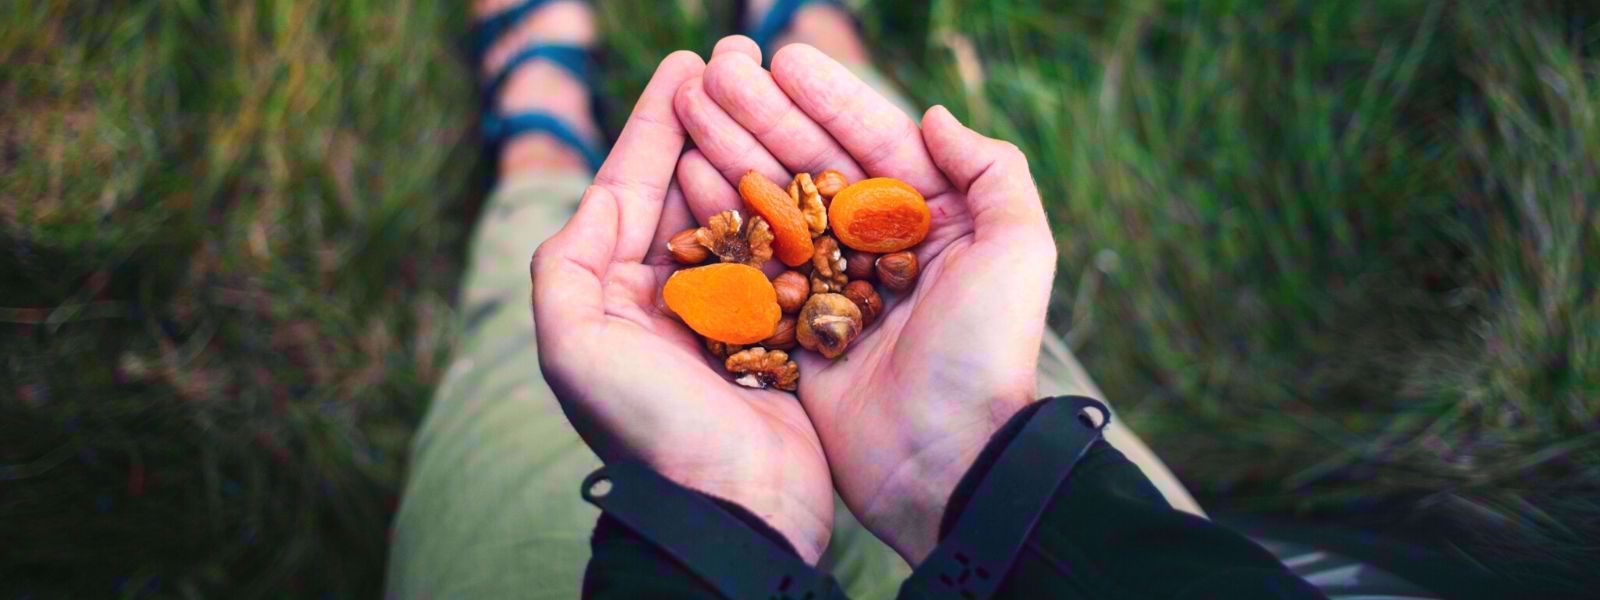 Hiking Trail Snack Ideas: Easy, Durable, Delicious